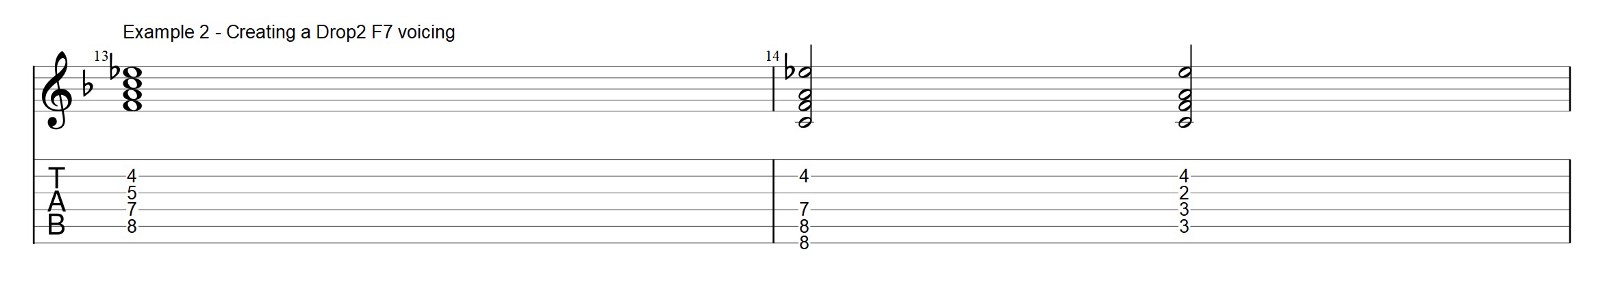 How to use Drop 2 Chords on a Jazz Blues — Bebop Skill